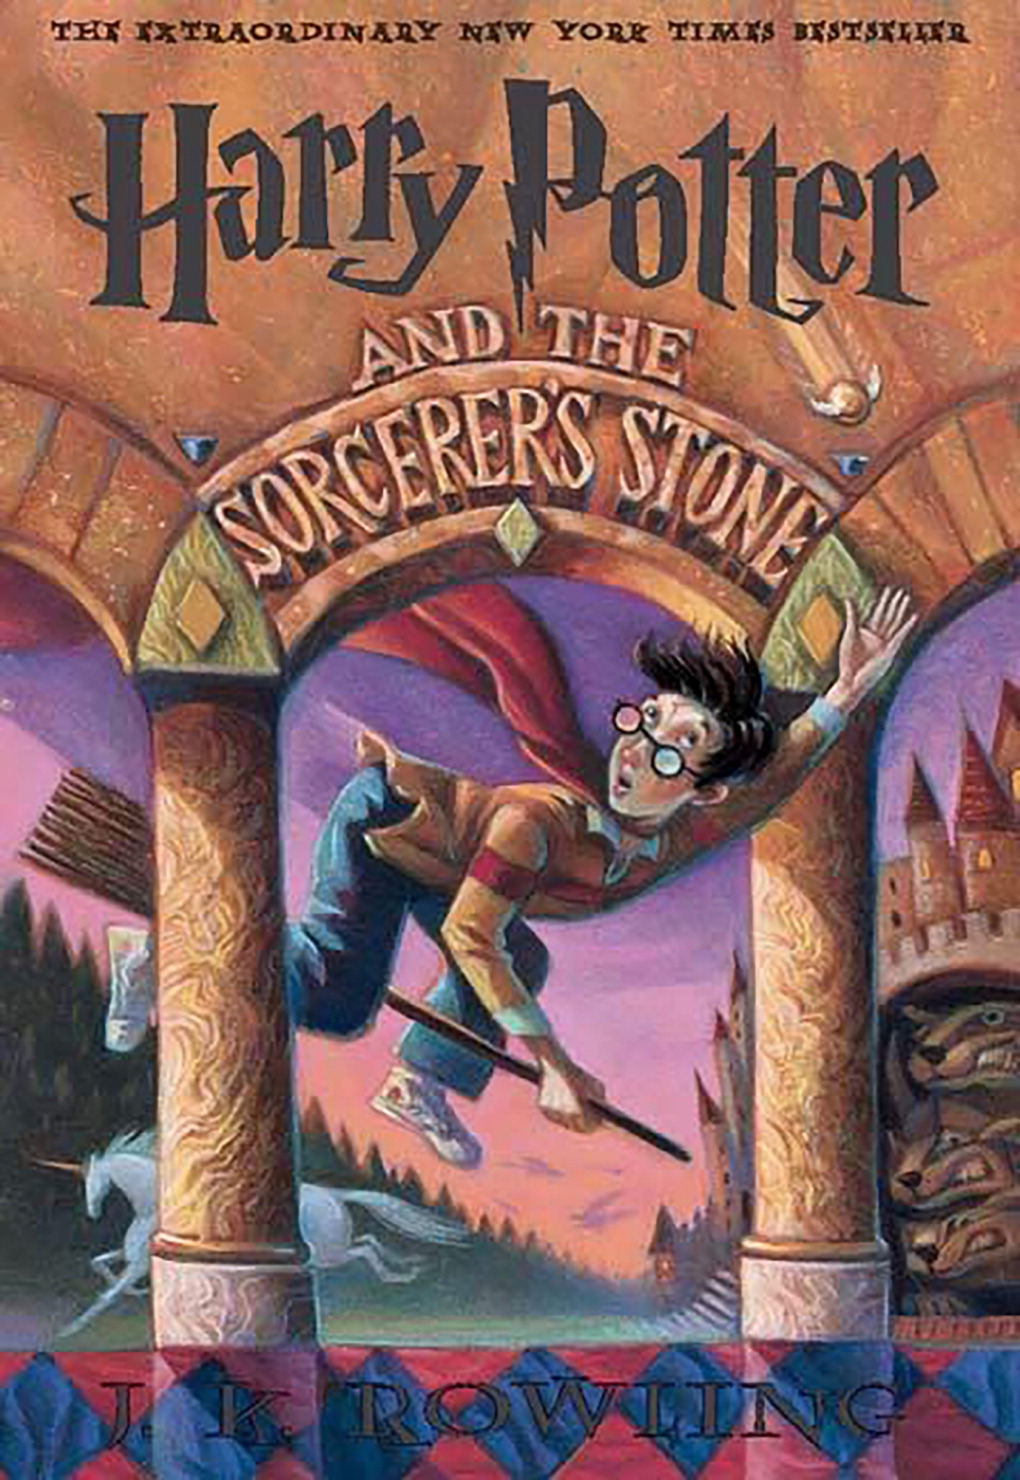 Classroom Library Harry Potter And The Sorcerer's Stone; Read-along Kit - 1574631 - Instructional Materials Resources Science Activities Equipment Physical Science Projects Books 1574631